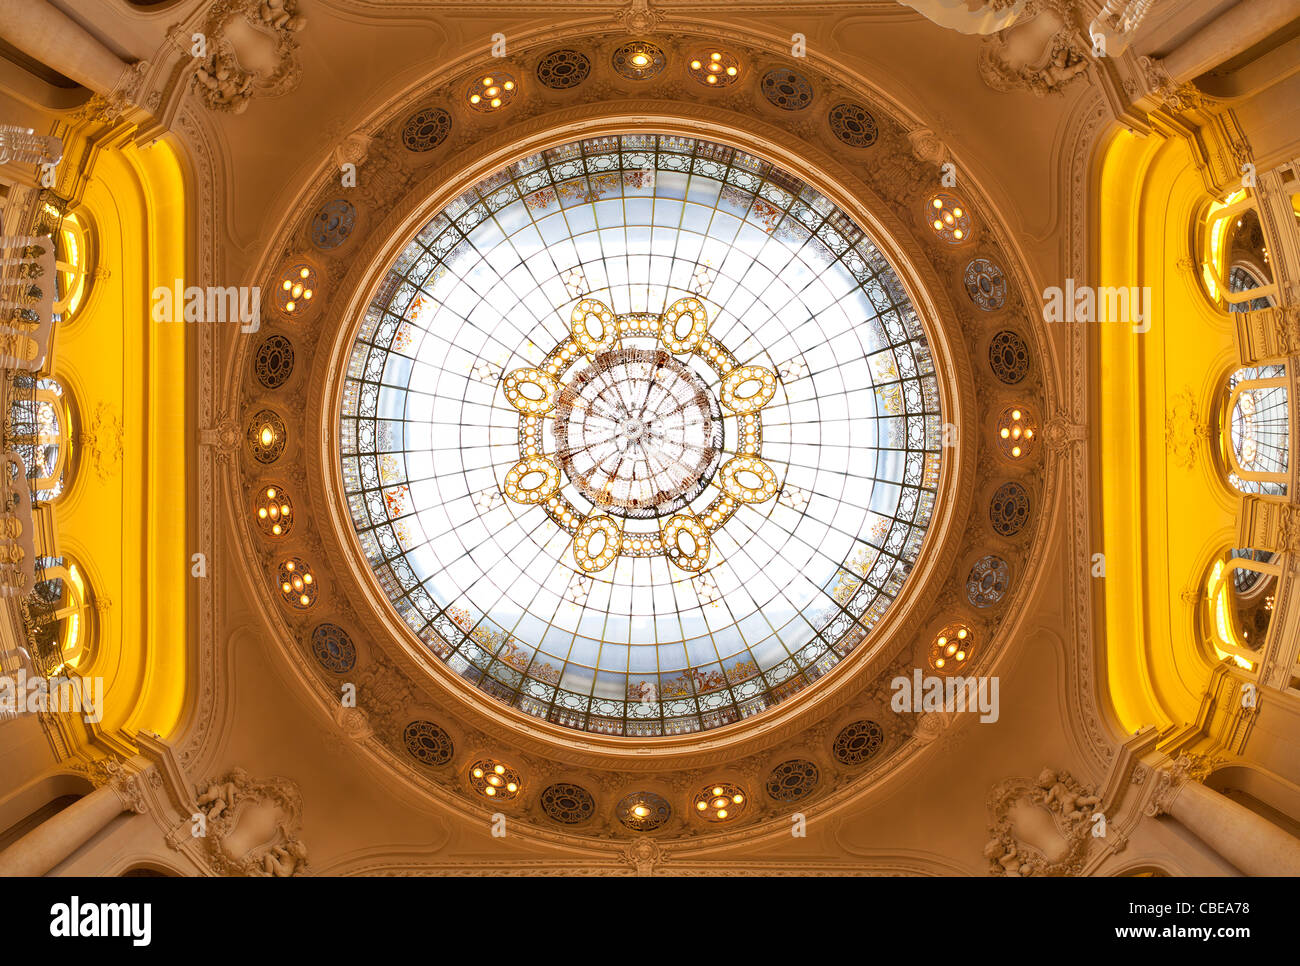 The Berlioz lounge ceiling and glass roof of the Vichy's opera house (France). Plafond et verrière du salon - Stock Image